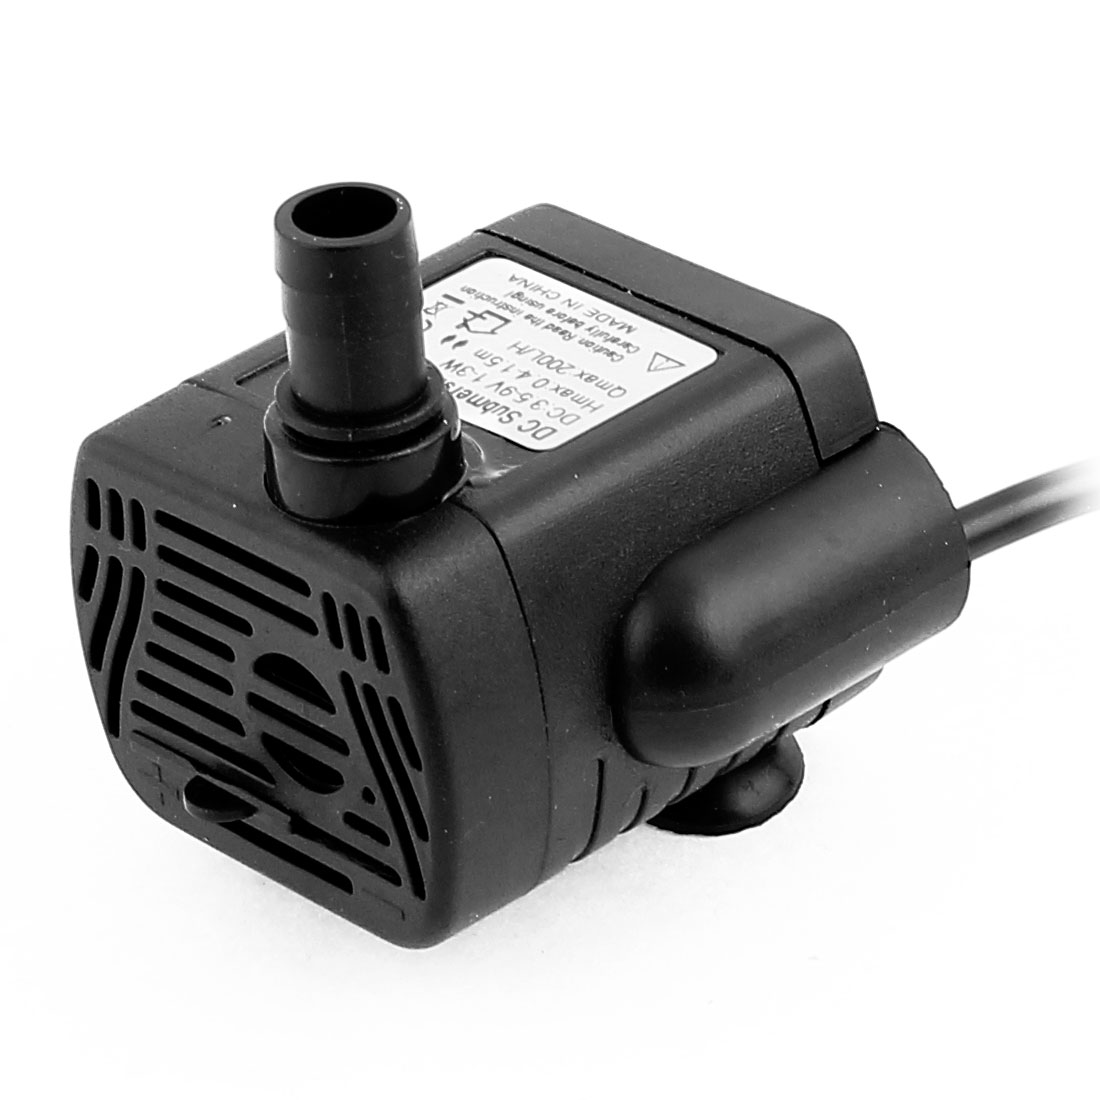 DC 3.5V-9V 1-3W USB Solar Mini Submersible Pump for Aquarium Fish Tank Fountain Pond